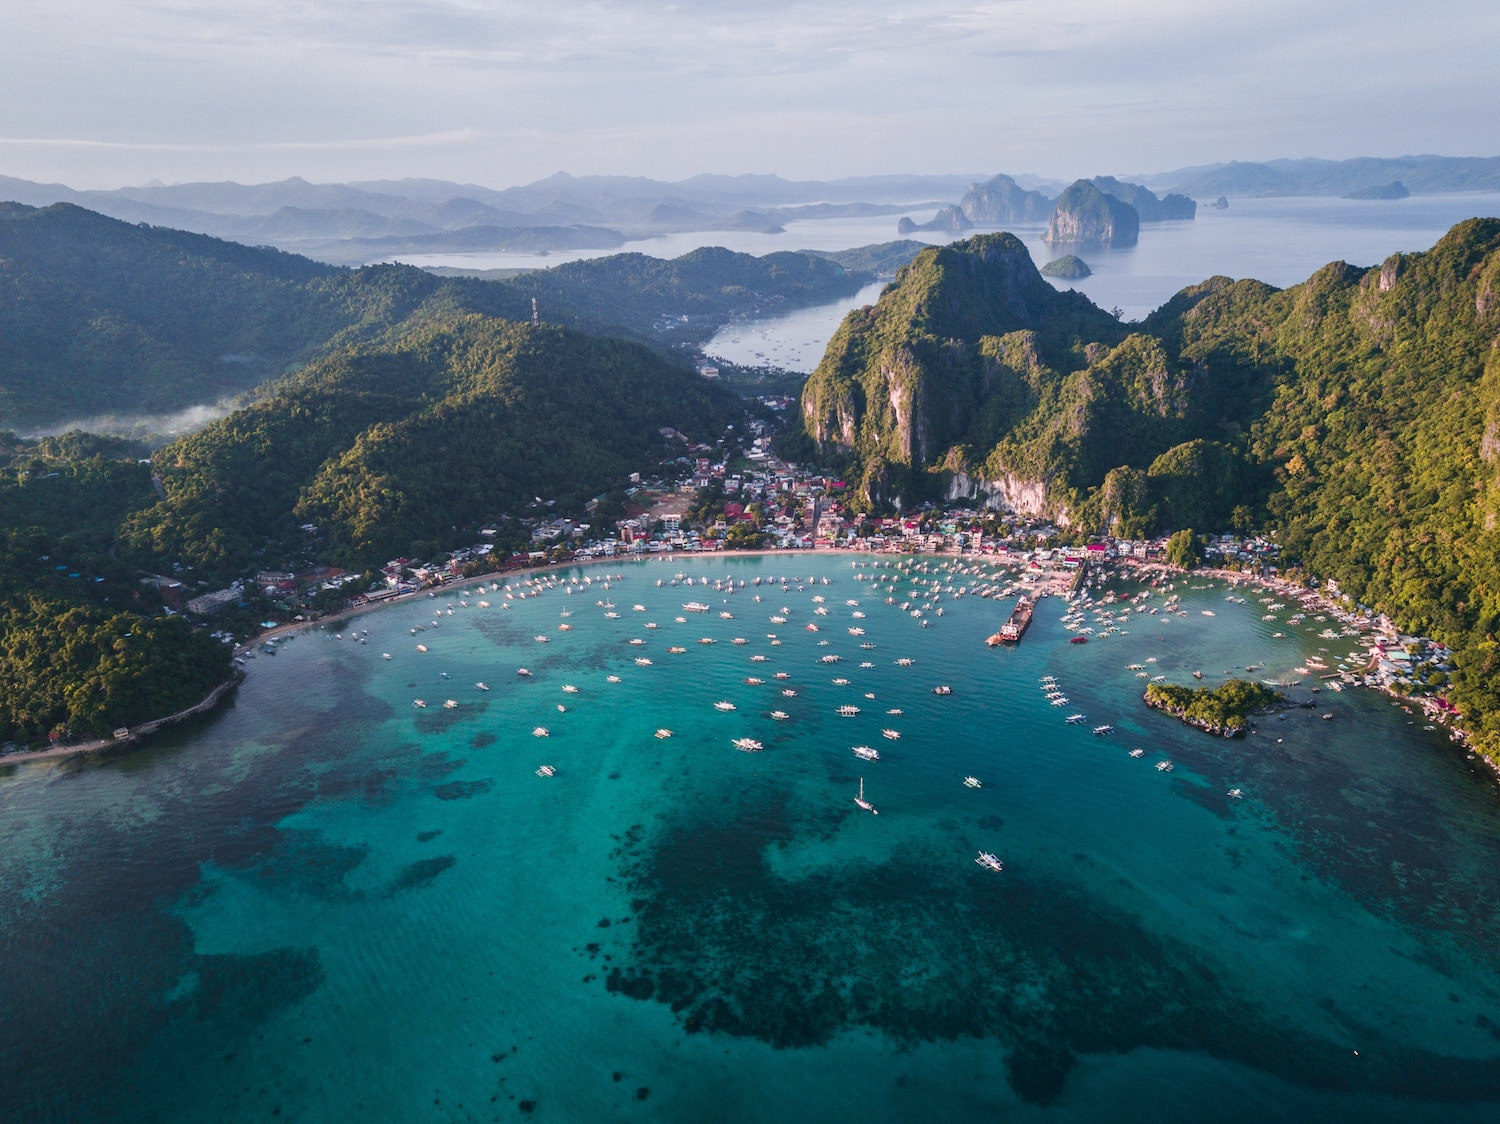 Philippines Palawan Island | Warm Weather Destinations to Escape the Winter Cold